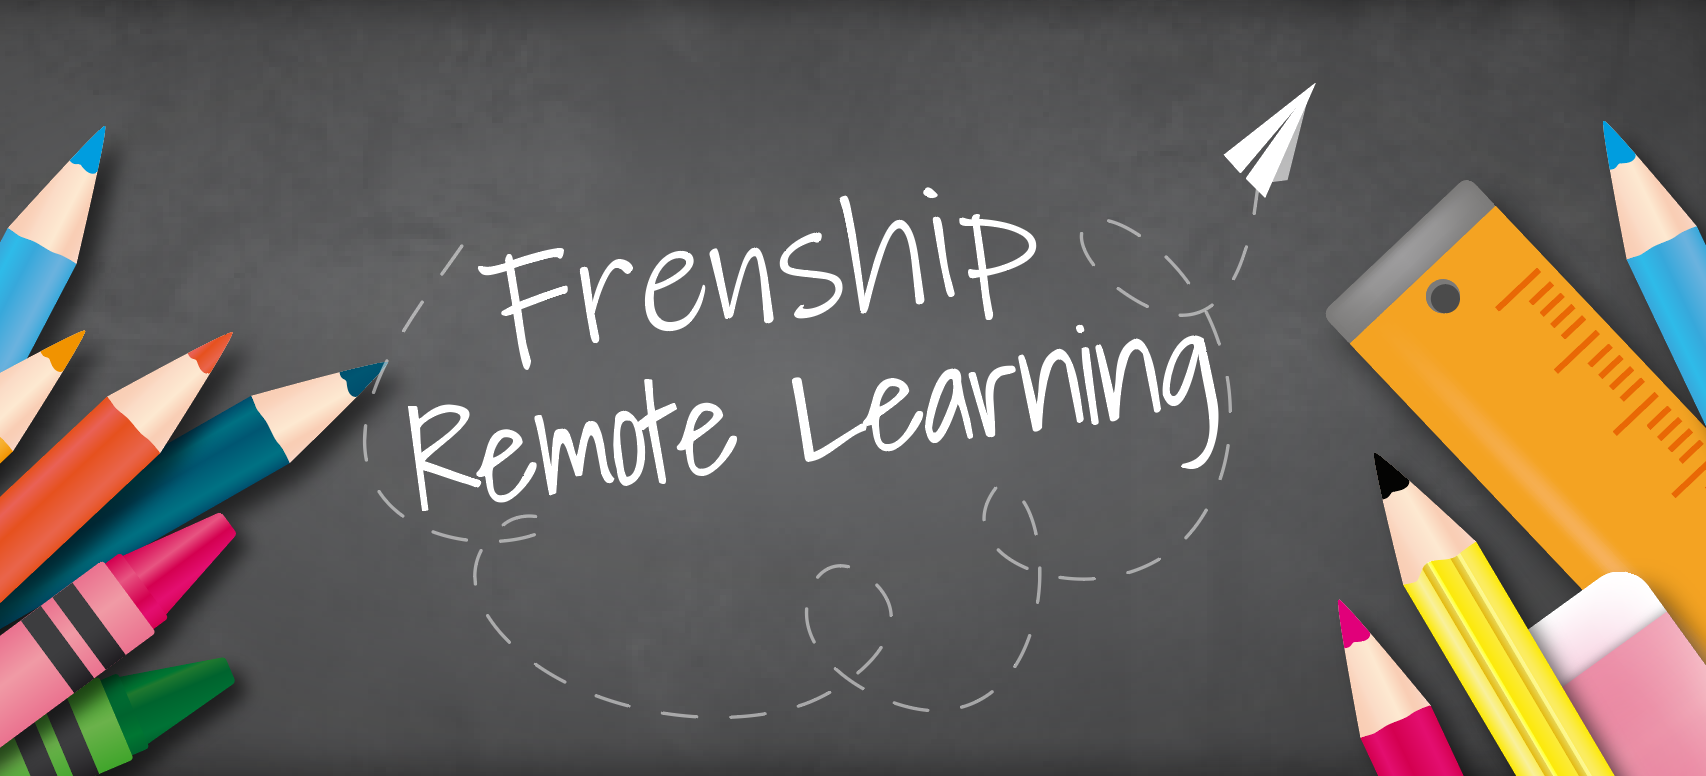 frenship remote learning